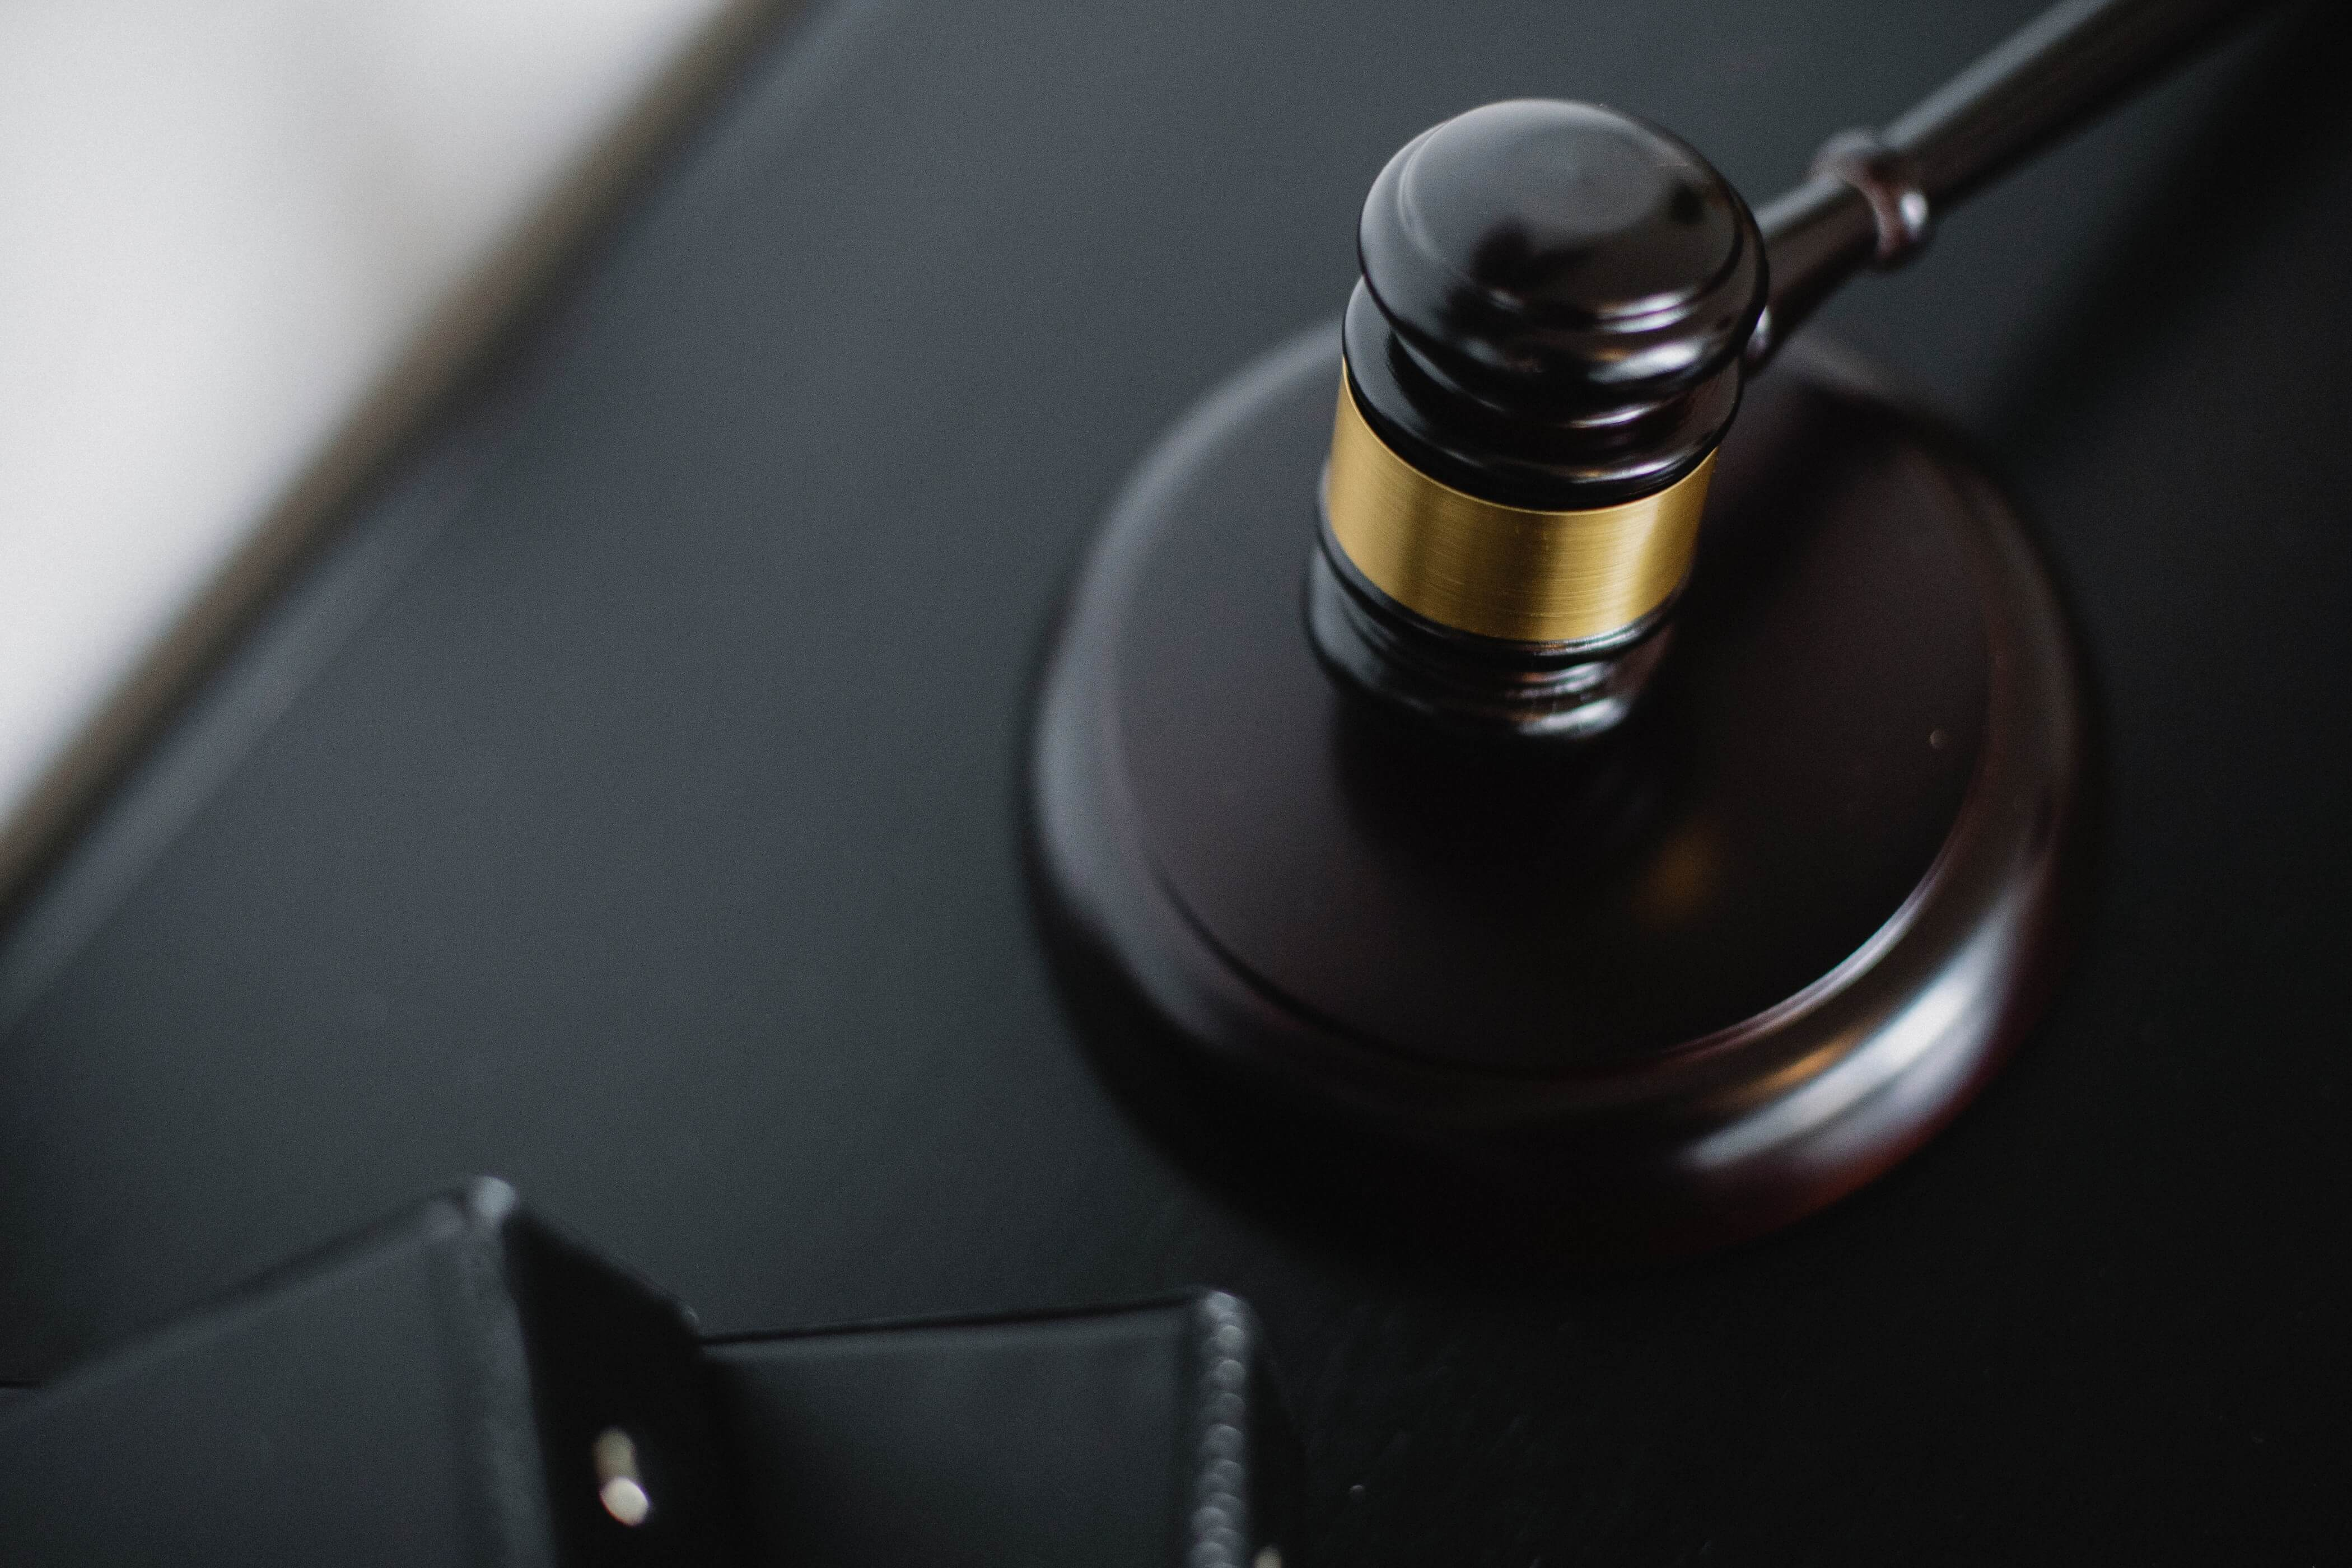 The procedure for filing a complaint against a Lawyer